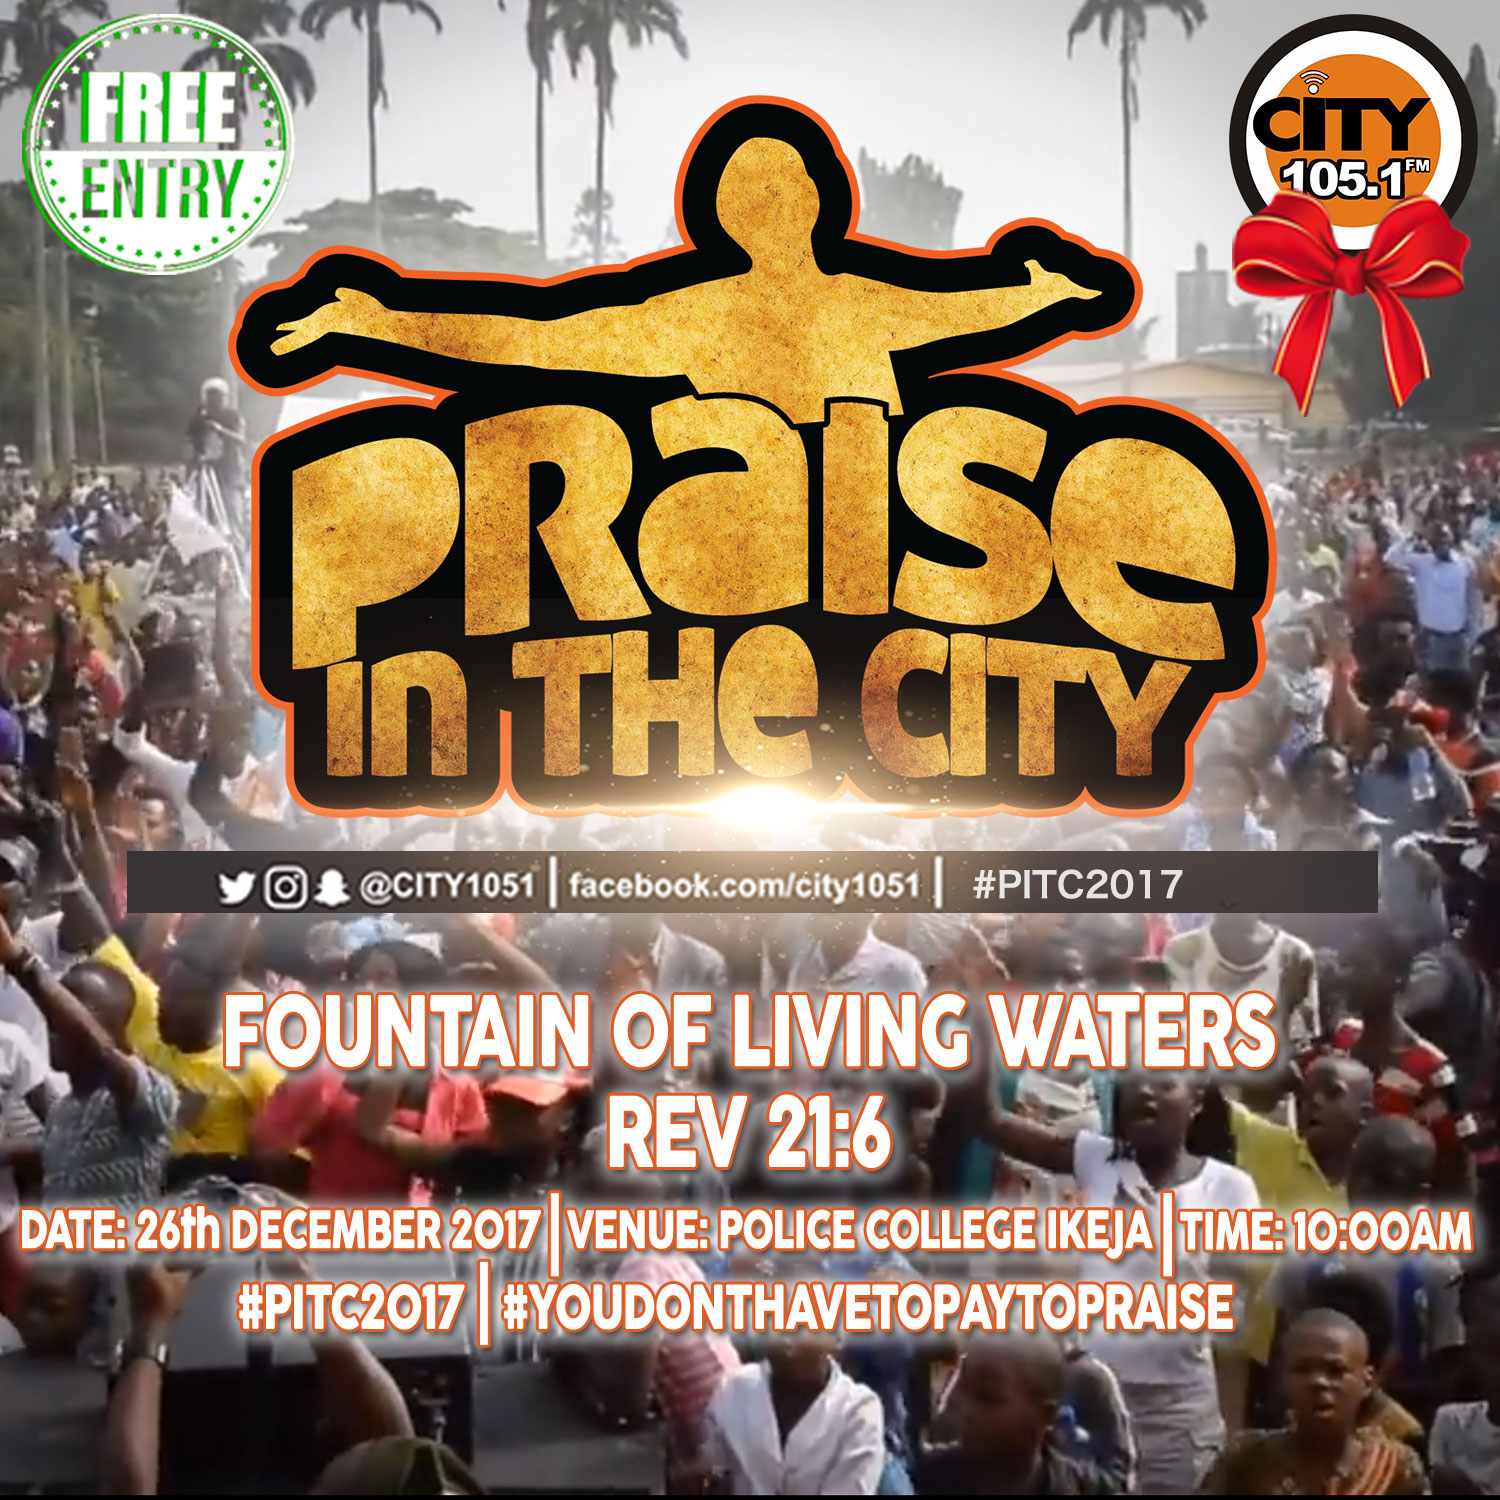 City 105.1 FM presents this year